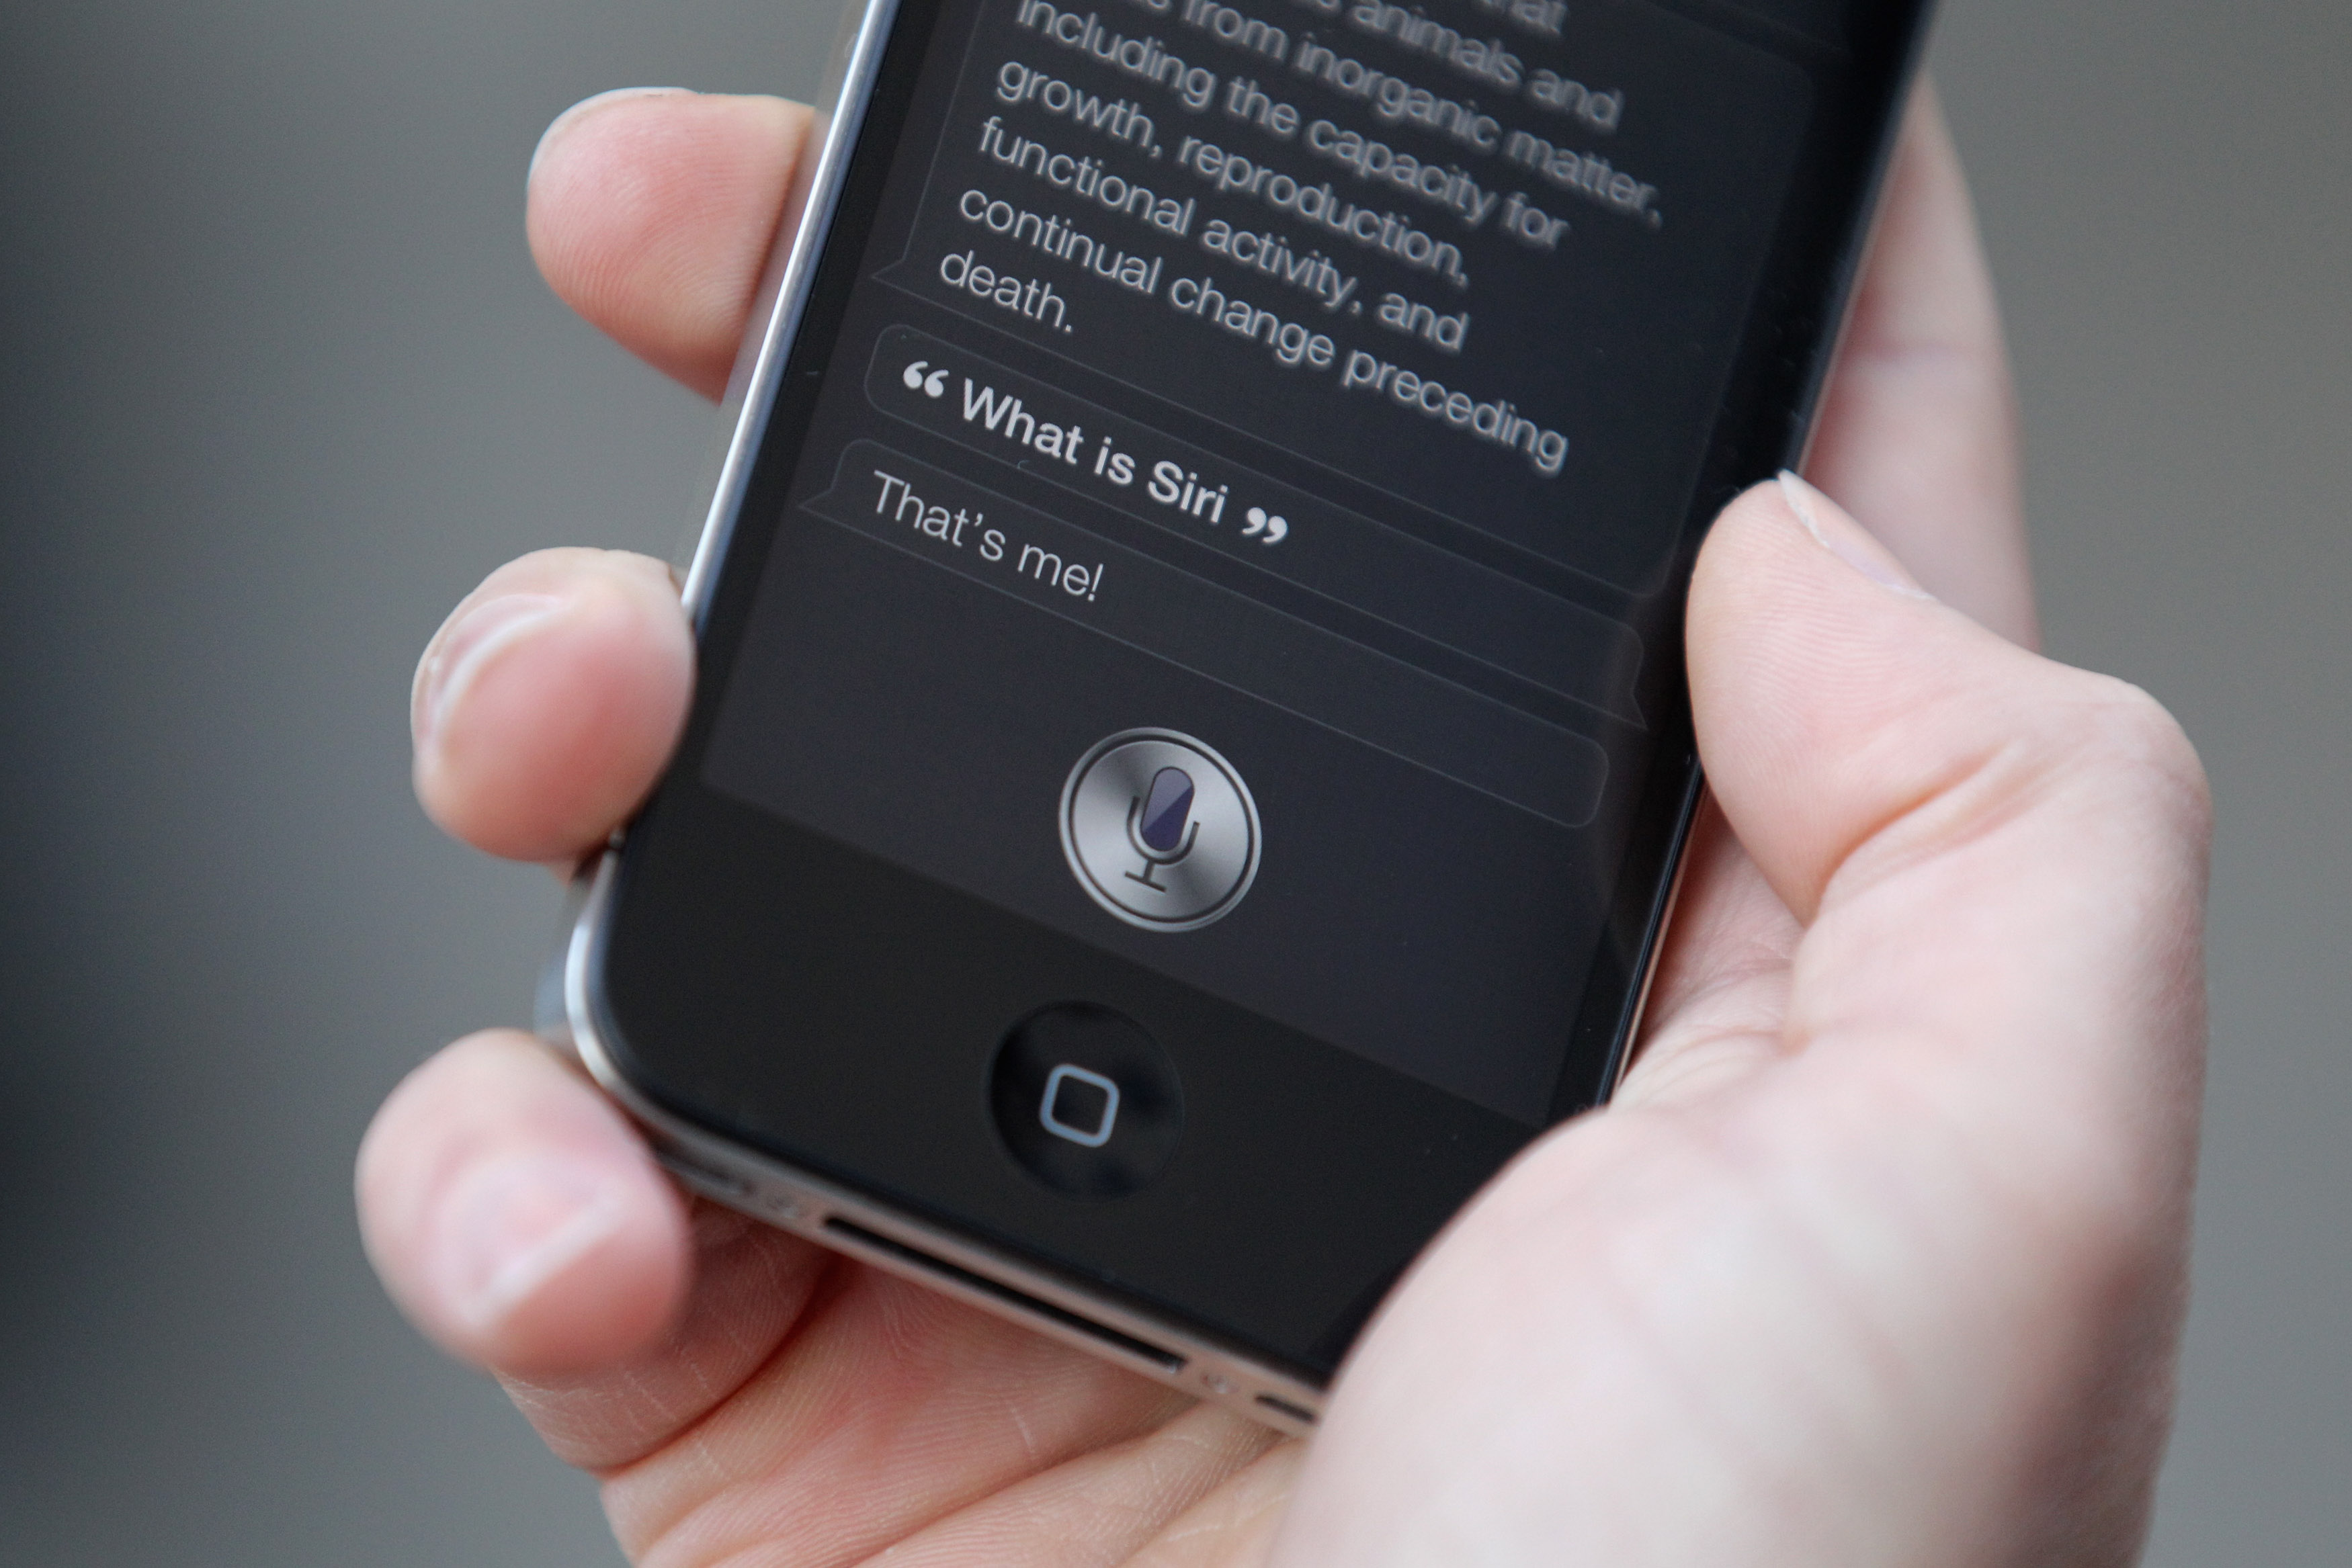 Should We Really Confide in Siri?